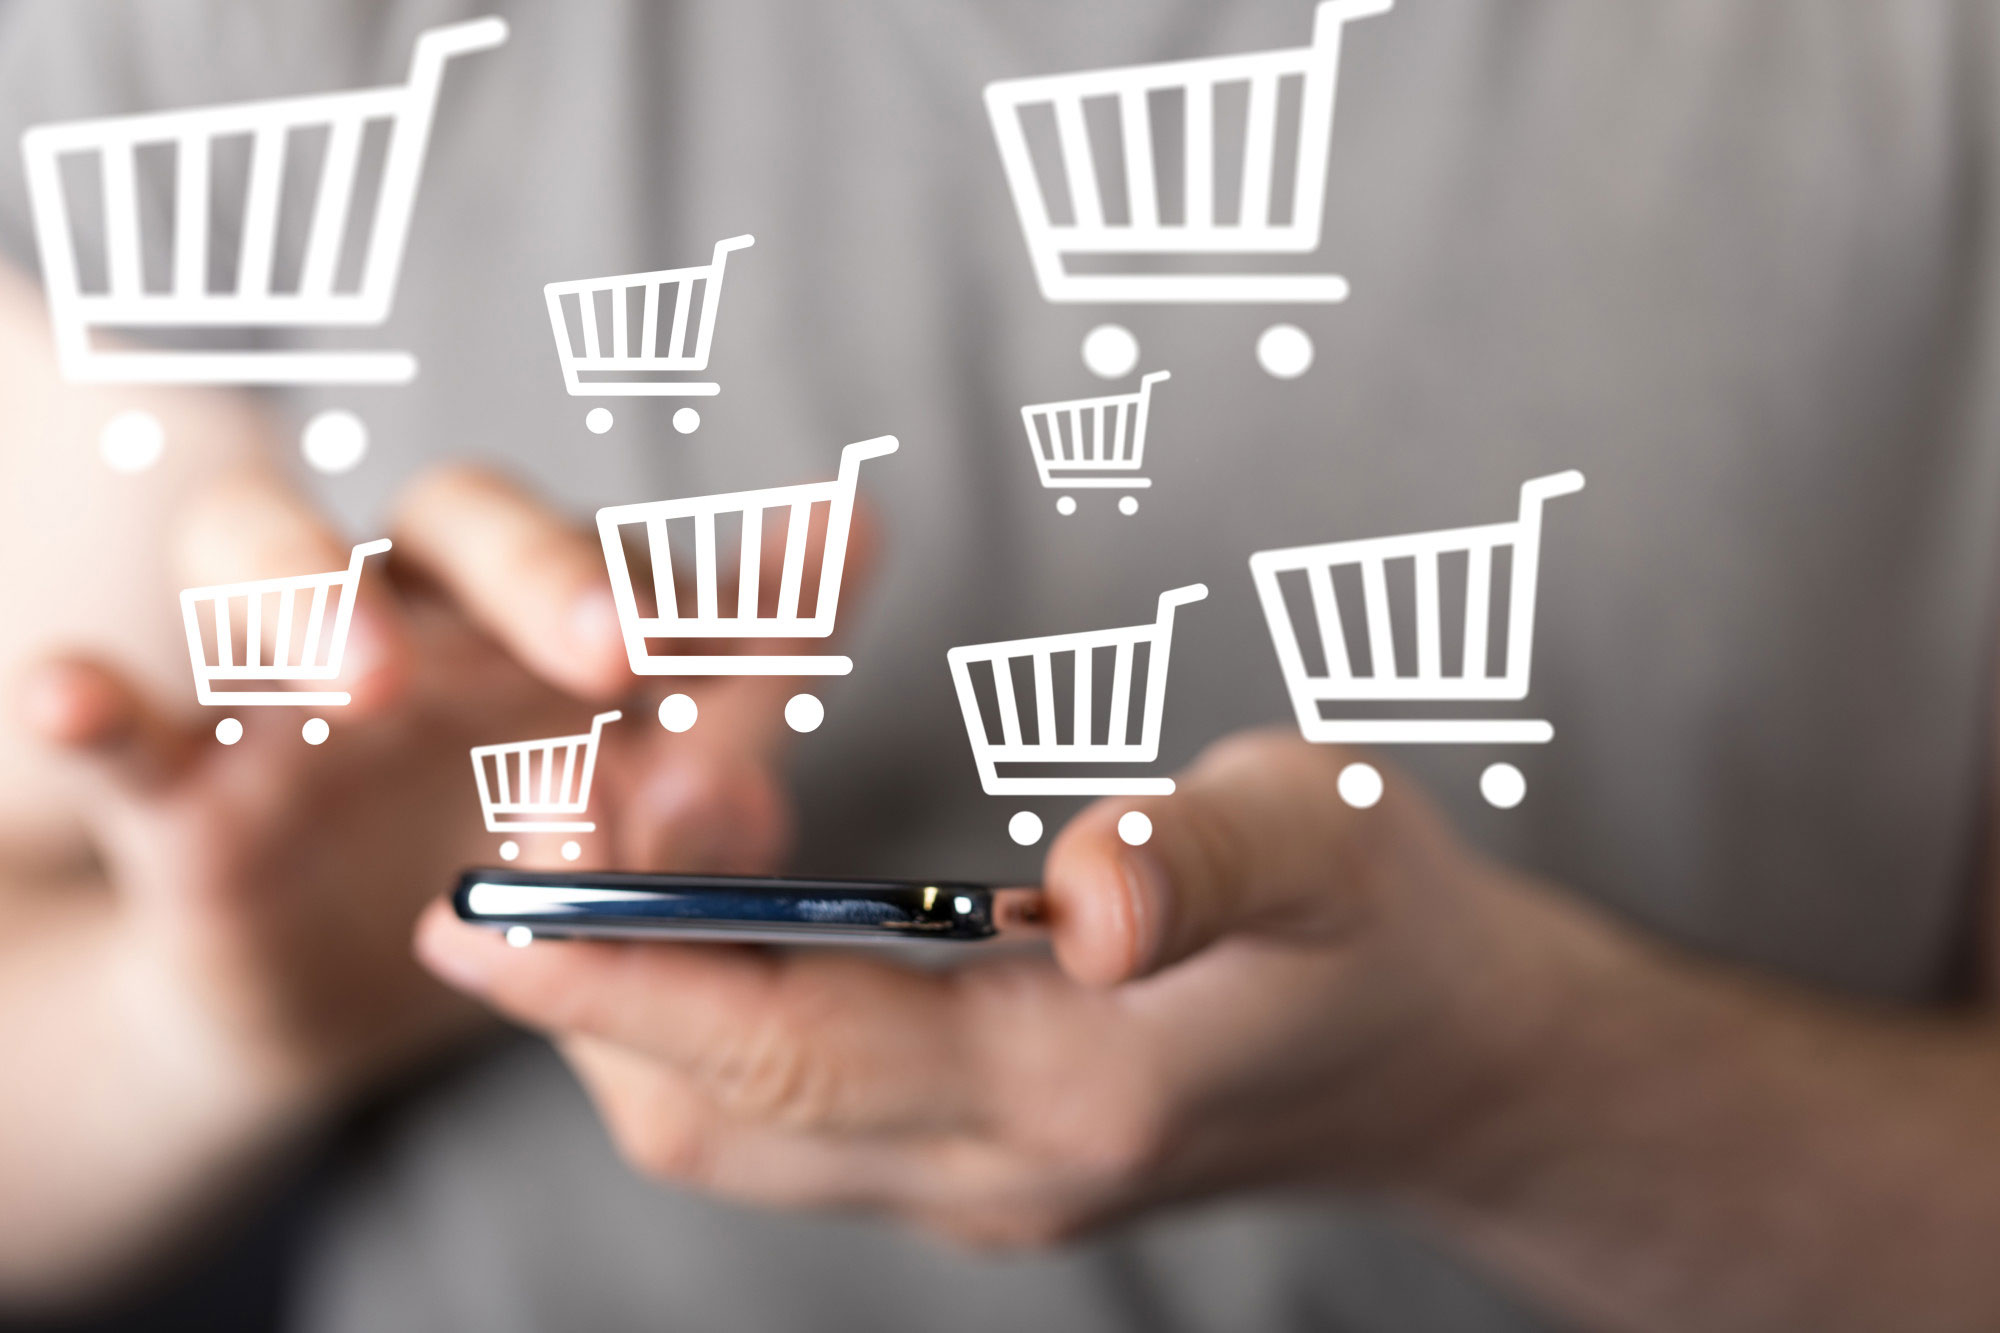 7 Steps to Prepare Your Business for Cyber Monday